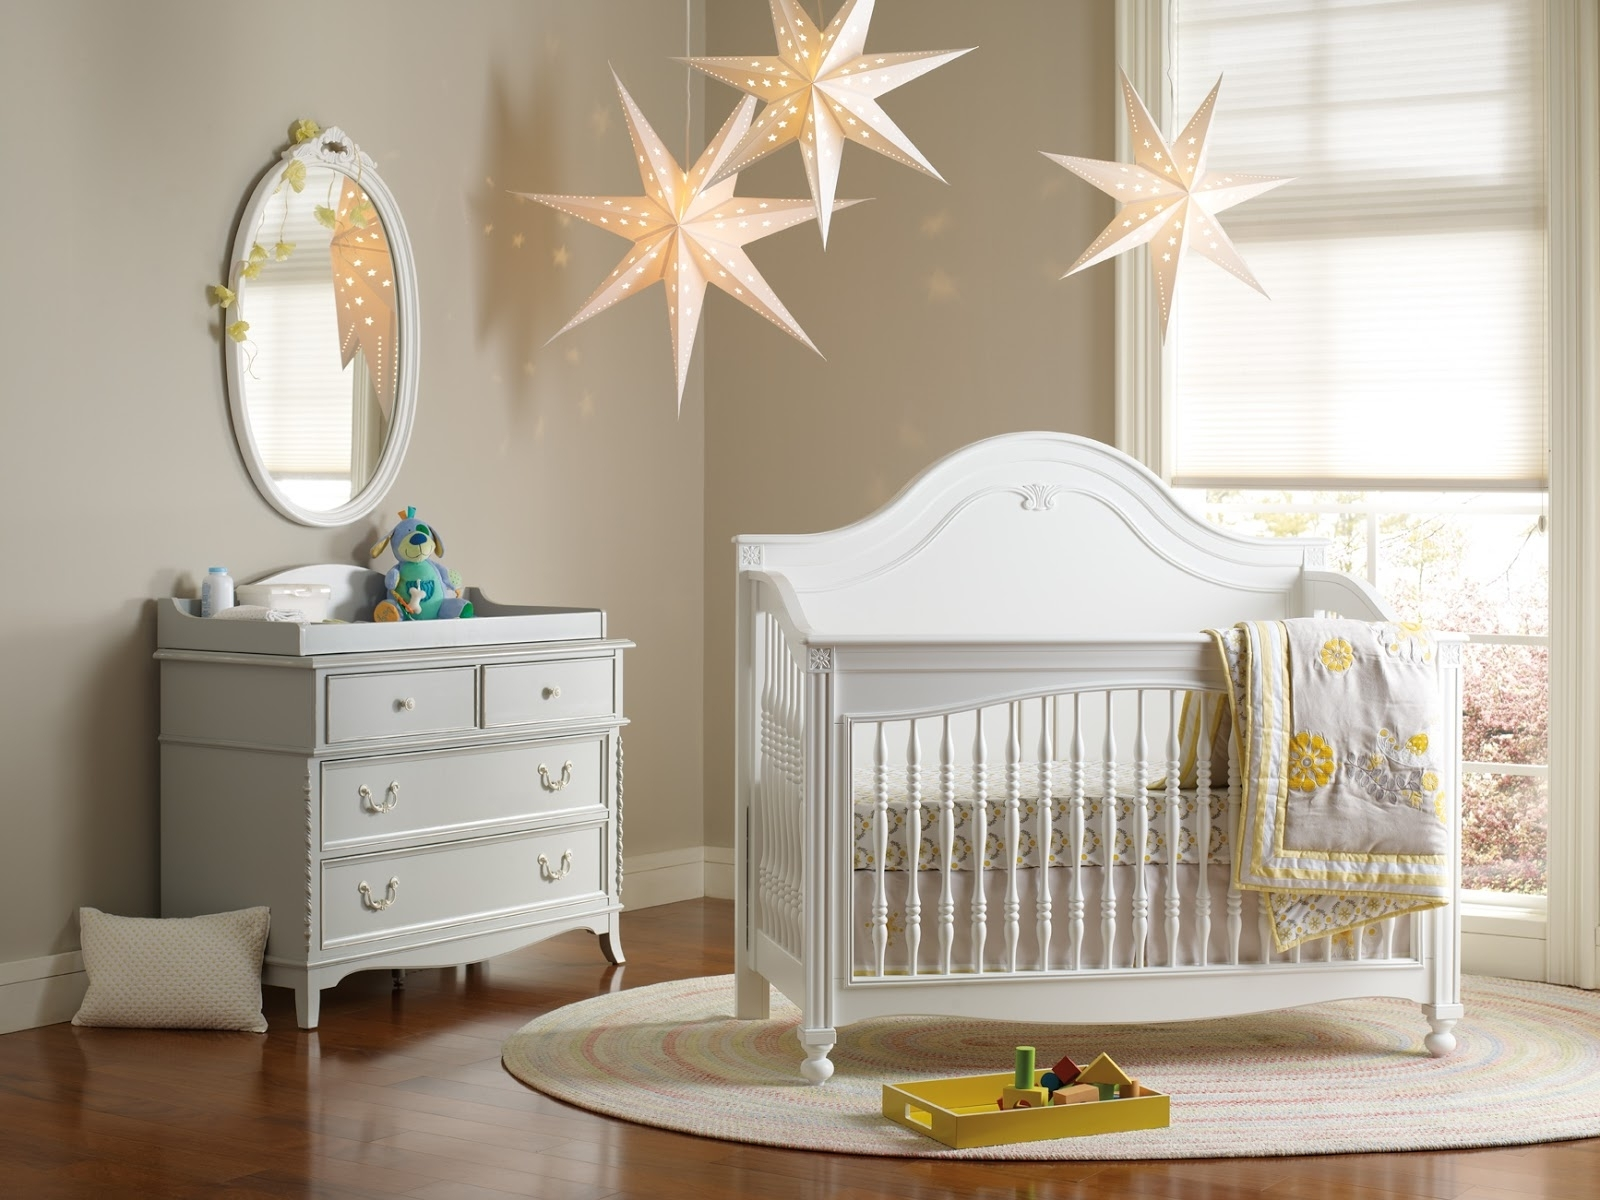 Besostyle Ba Kid Room Styling throughout Ikea Baby Nursery - Design Decor